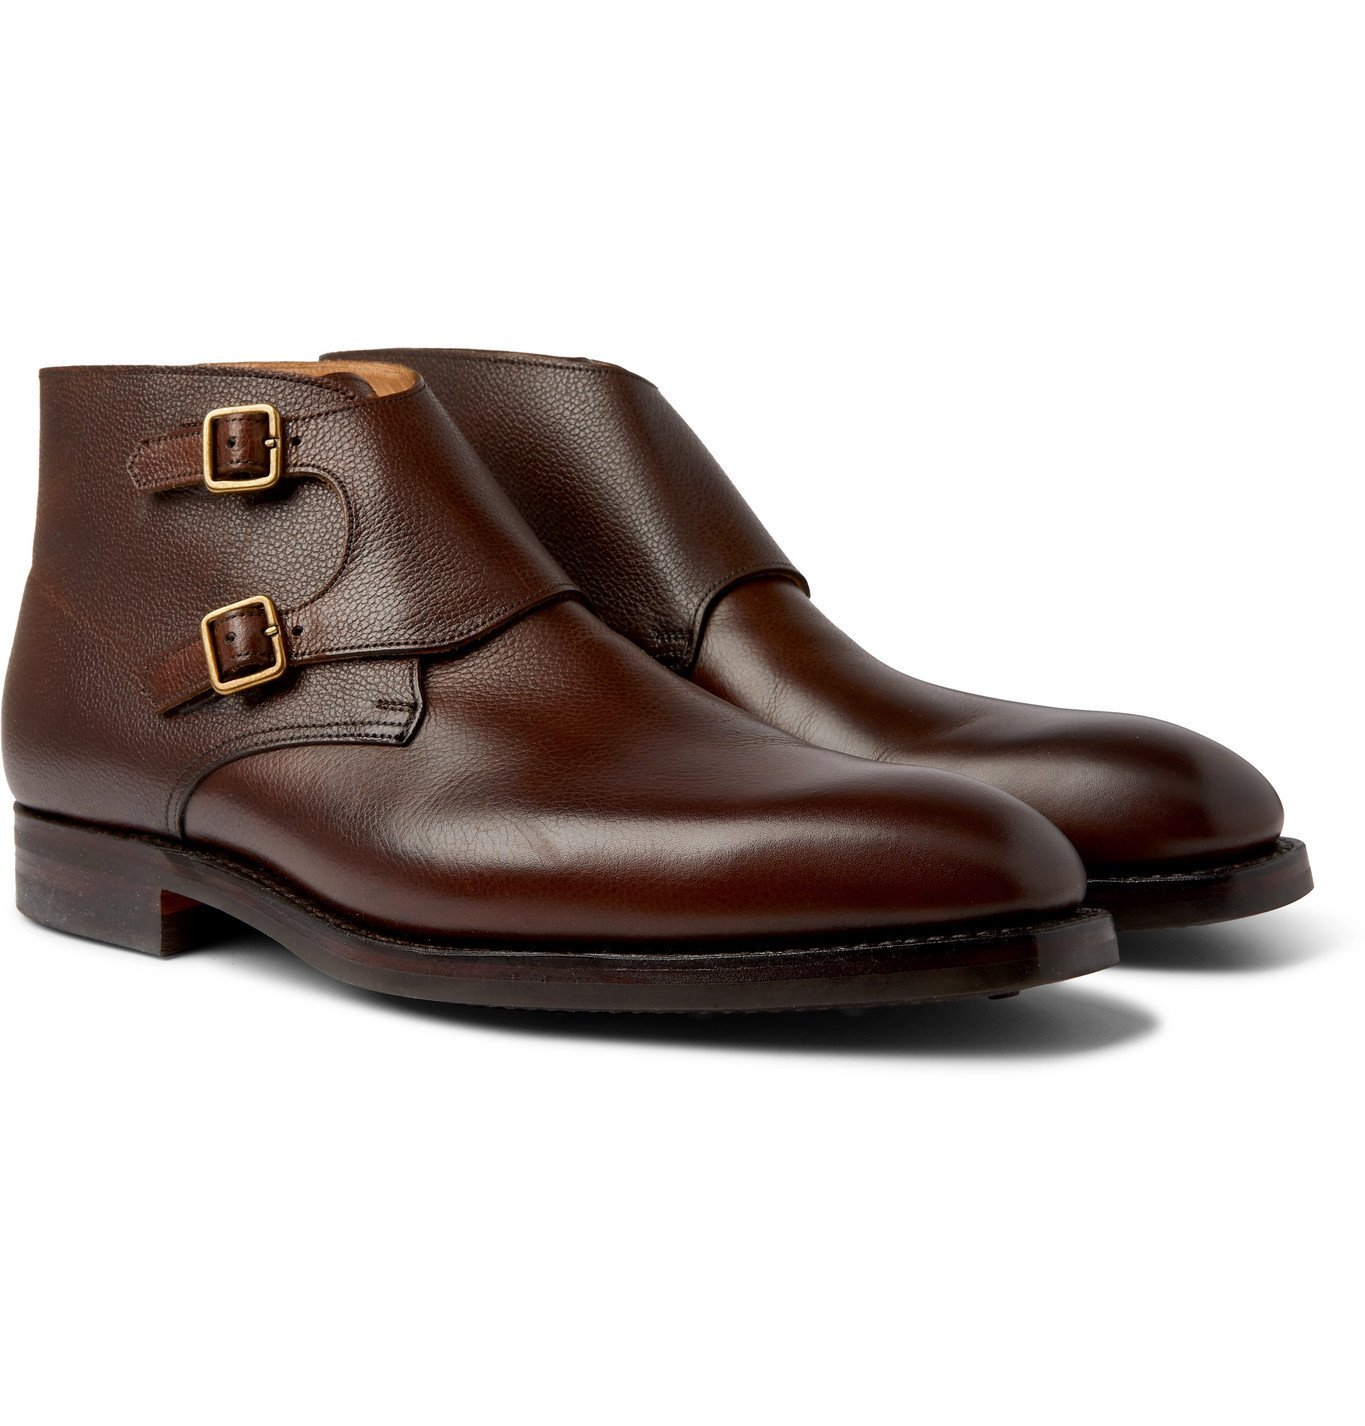 Photo: George Cleverley - Fry Pebble-Grain Leather Monk-Strap Boots - Brown